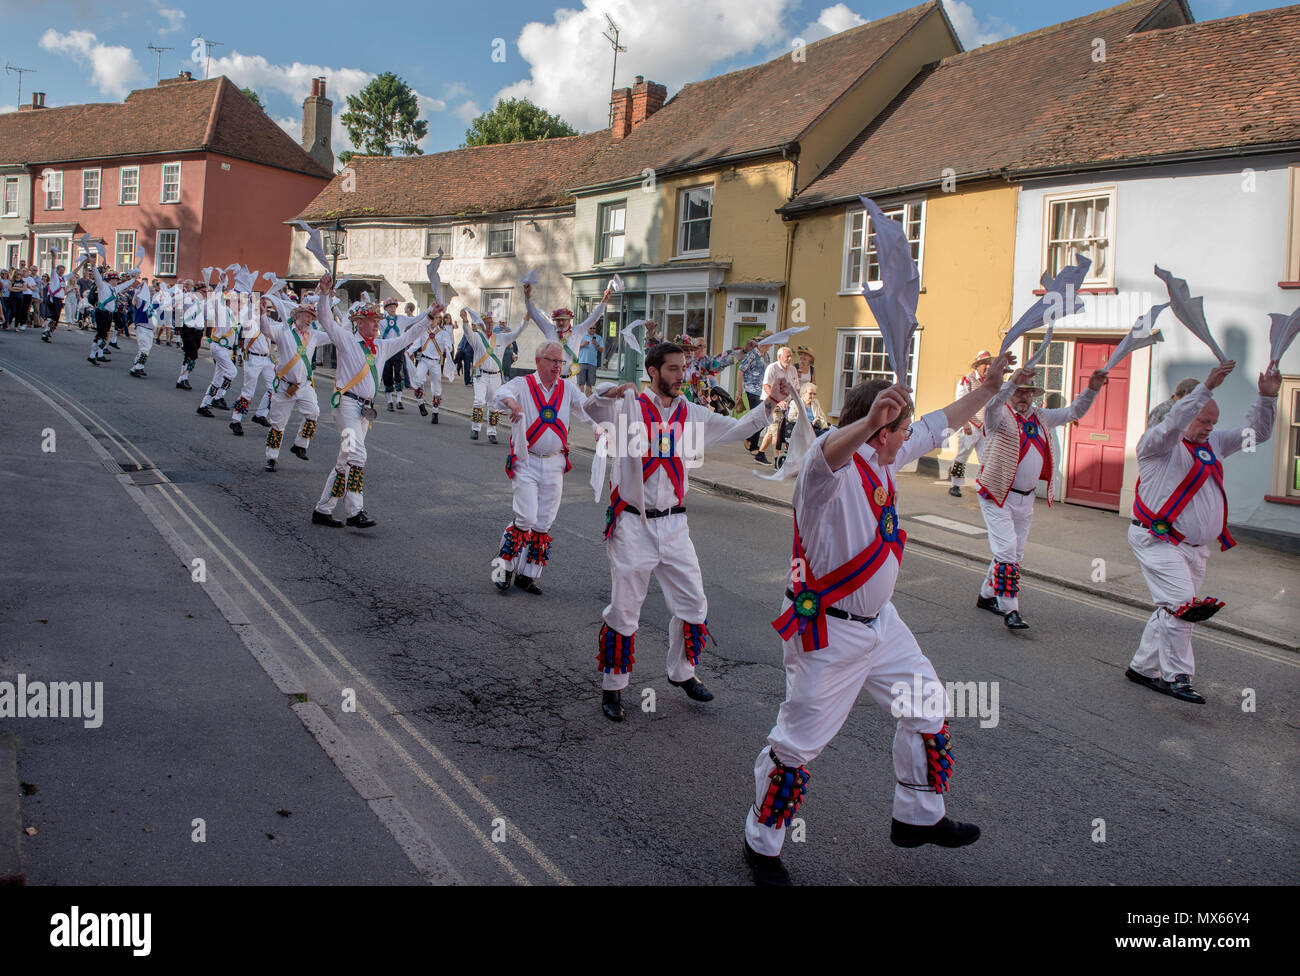 Thaxted Morris Weekend, Thaxted Essex England UK. 2-3 June 2018 The 85th Meeting of the Member Clubs of the Morris Ring hosted by Thaxted Morris Men (who wear red and white stripes) who lead the Saturday evening procession to Town Street in Thaxted after a busy day of dancing in a dozen local pubs in surrounding villages in North West Essex. The Chalice side lead Lincoln and Micklebarrow side. Credit: BRIAN HARRIS/Alamy Live News - Stock Image